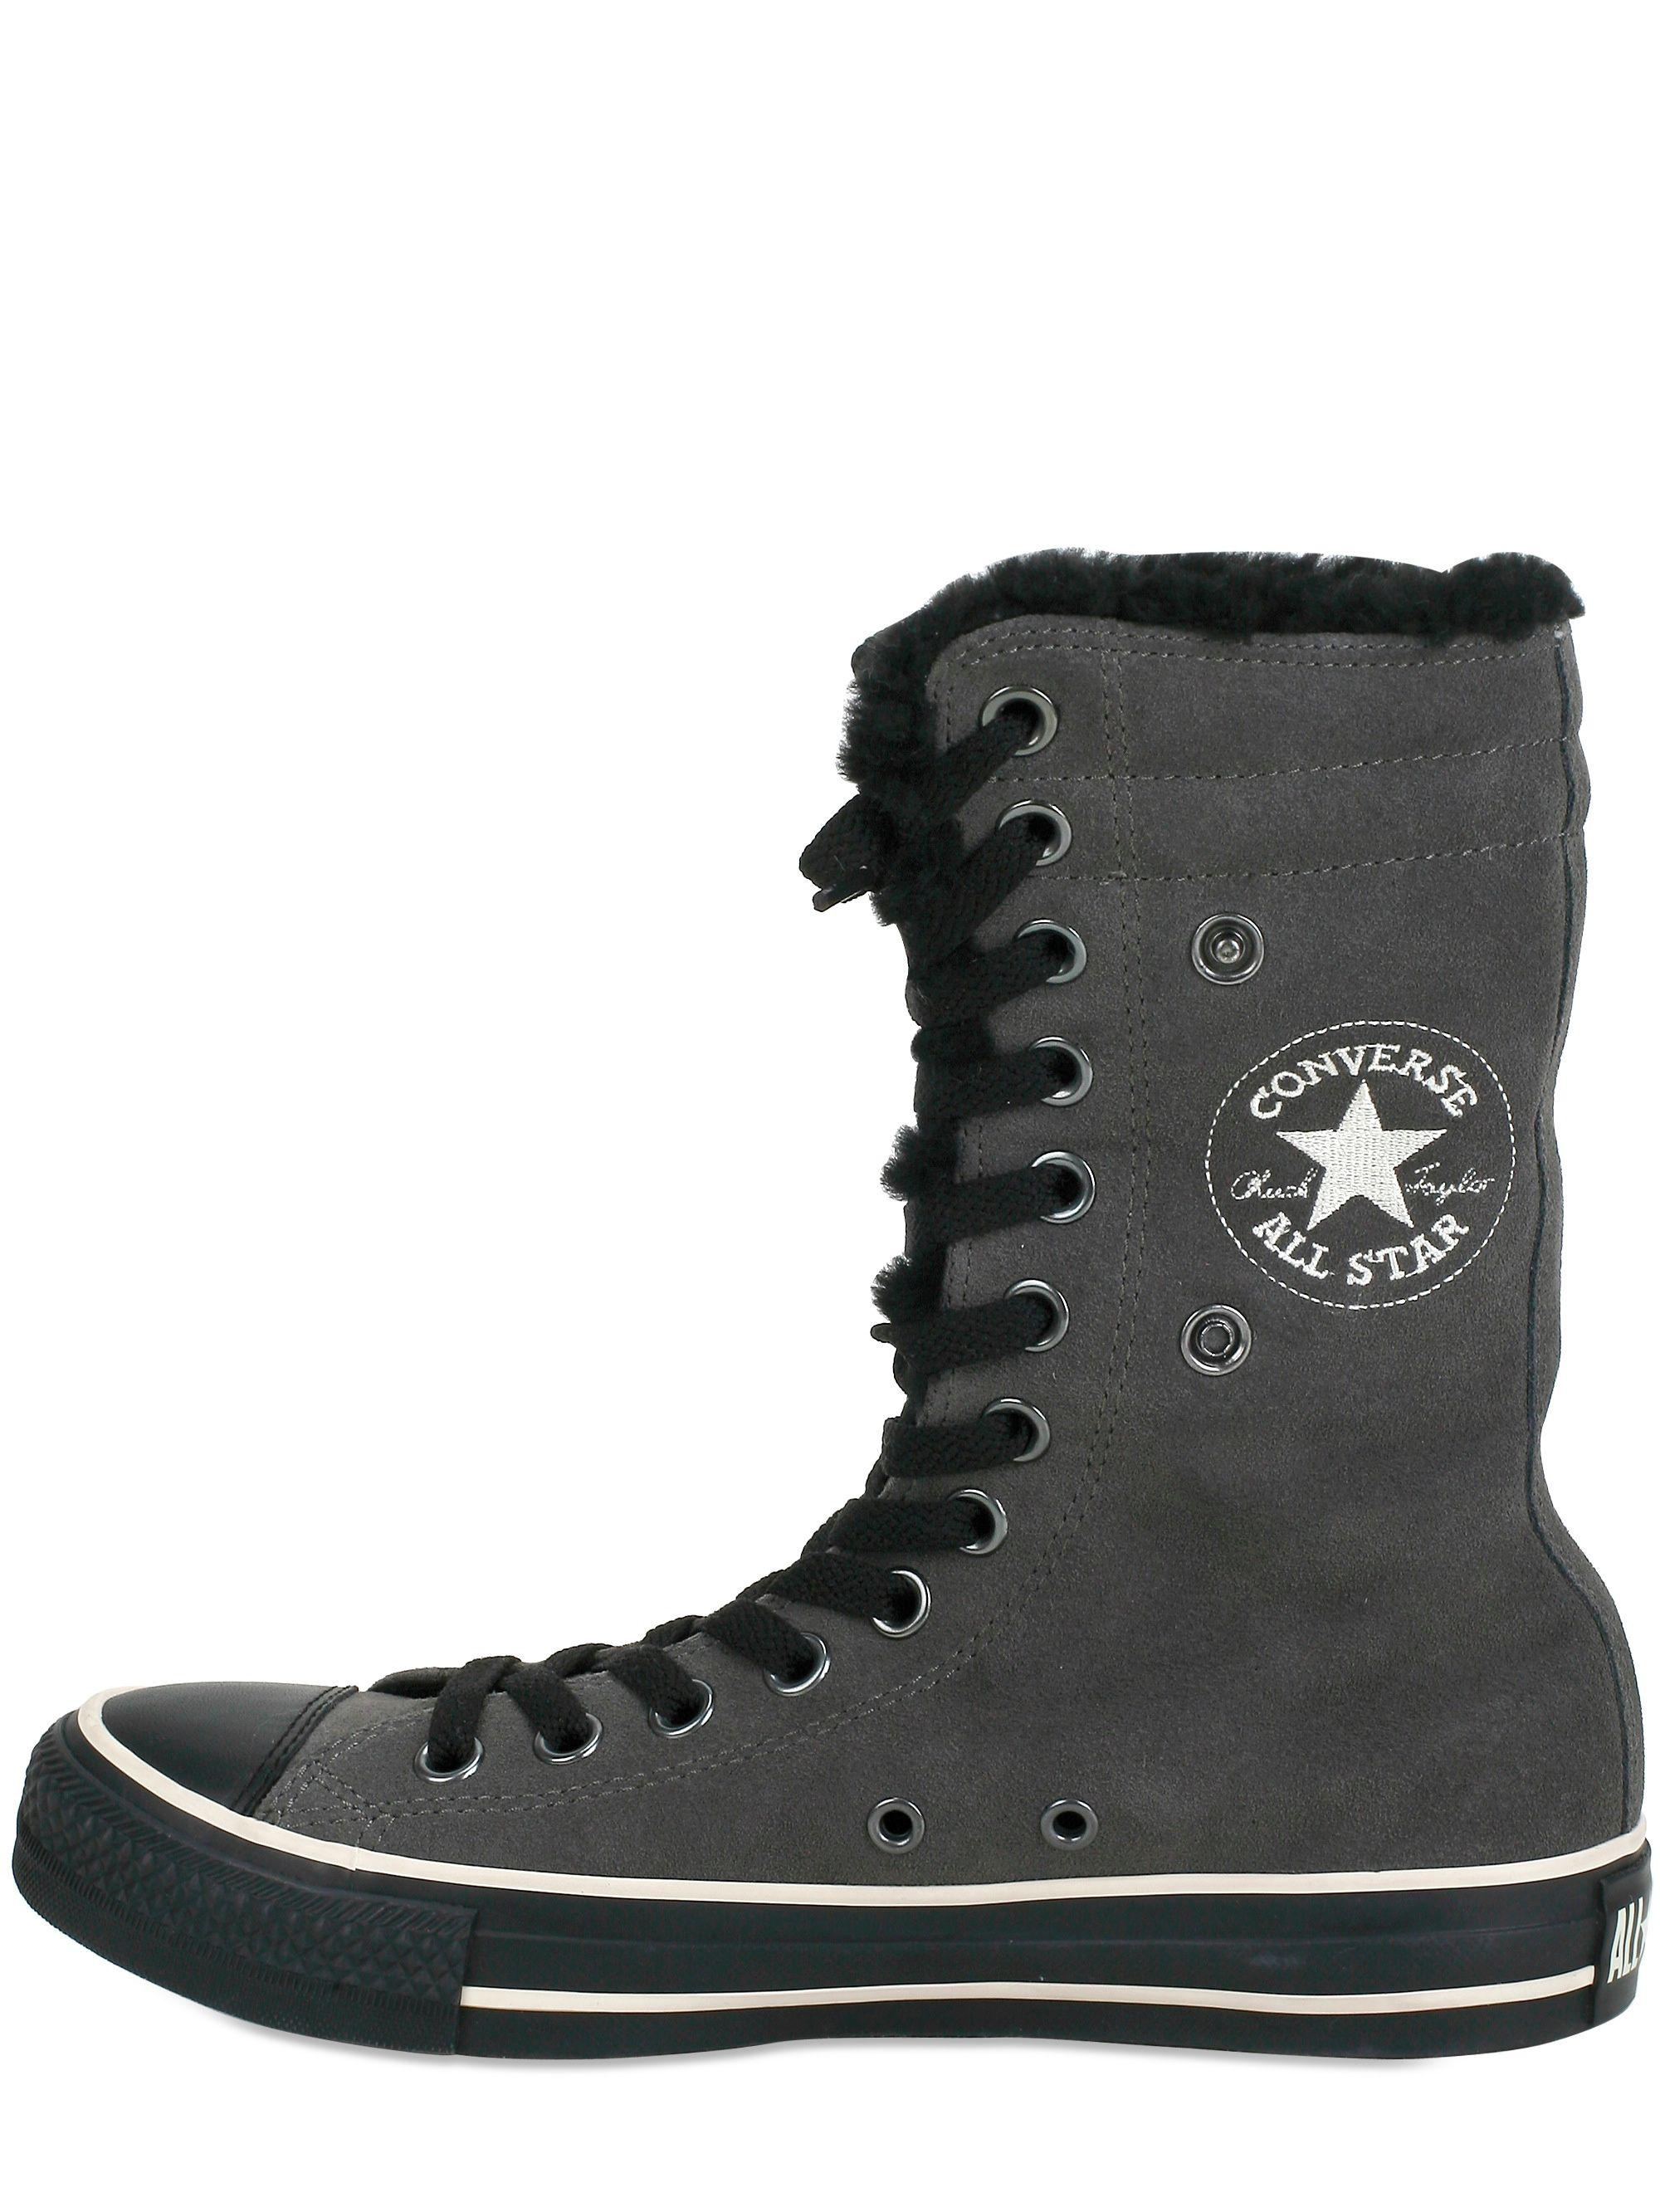 Converse All Star Knee Suede Eco Fur in Anthracite (Grey)